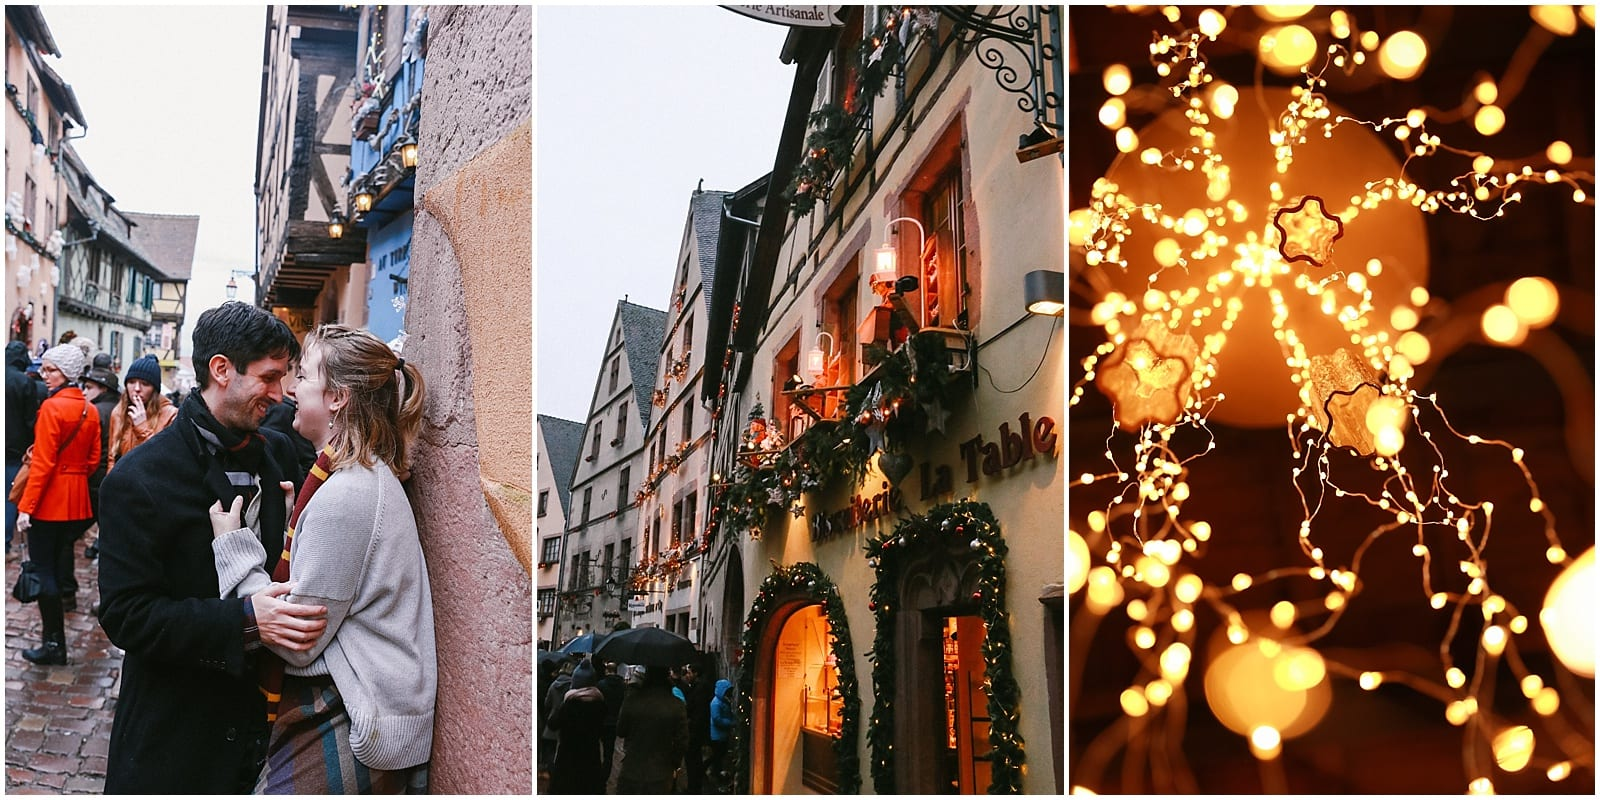 Christmas in Alsace France, French countryside villages of Ribeauville Riquewehr Kaysersberg